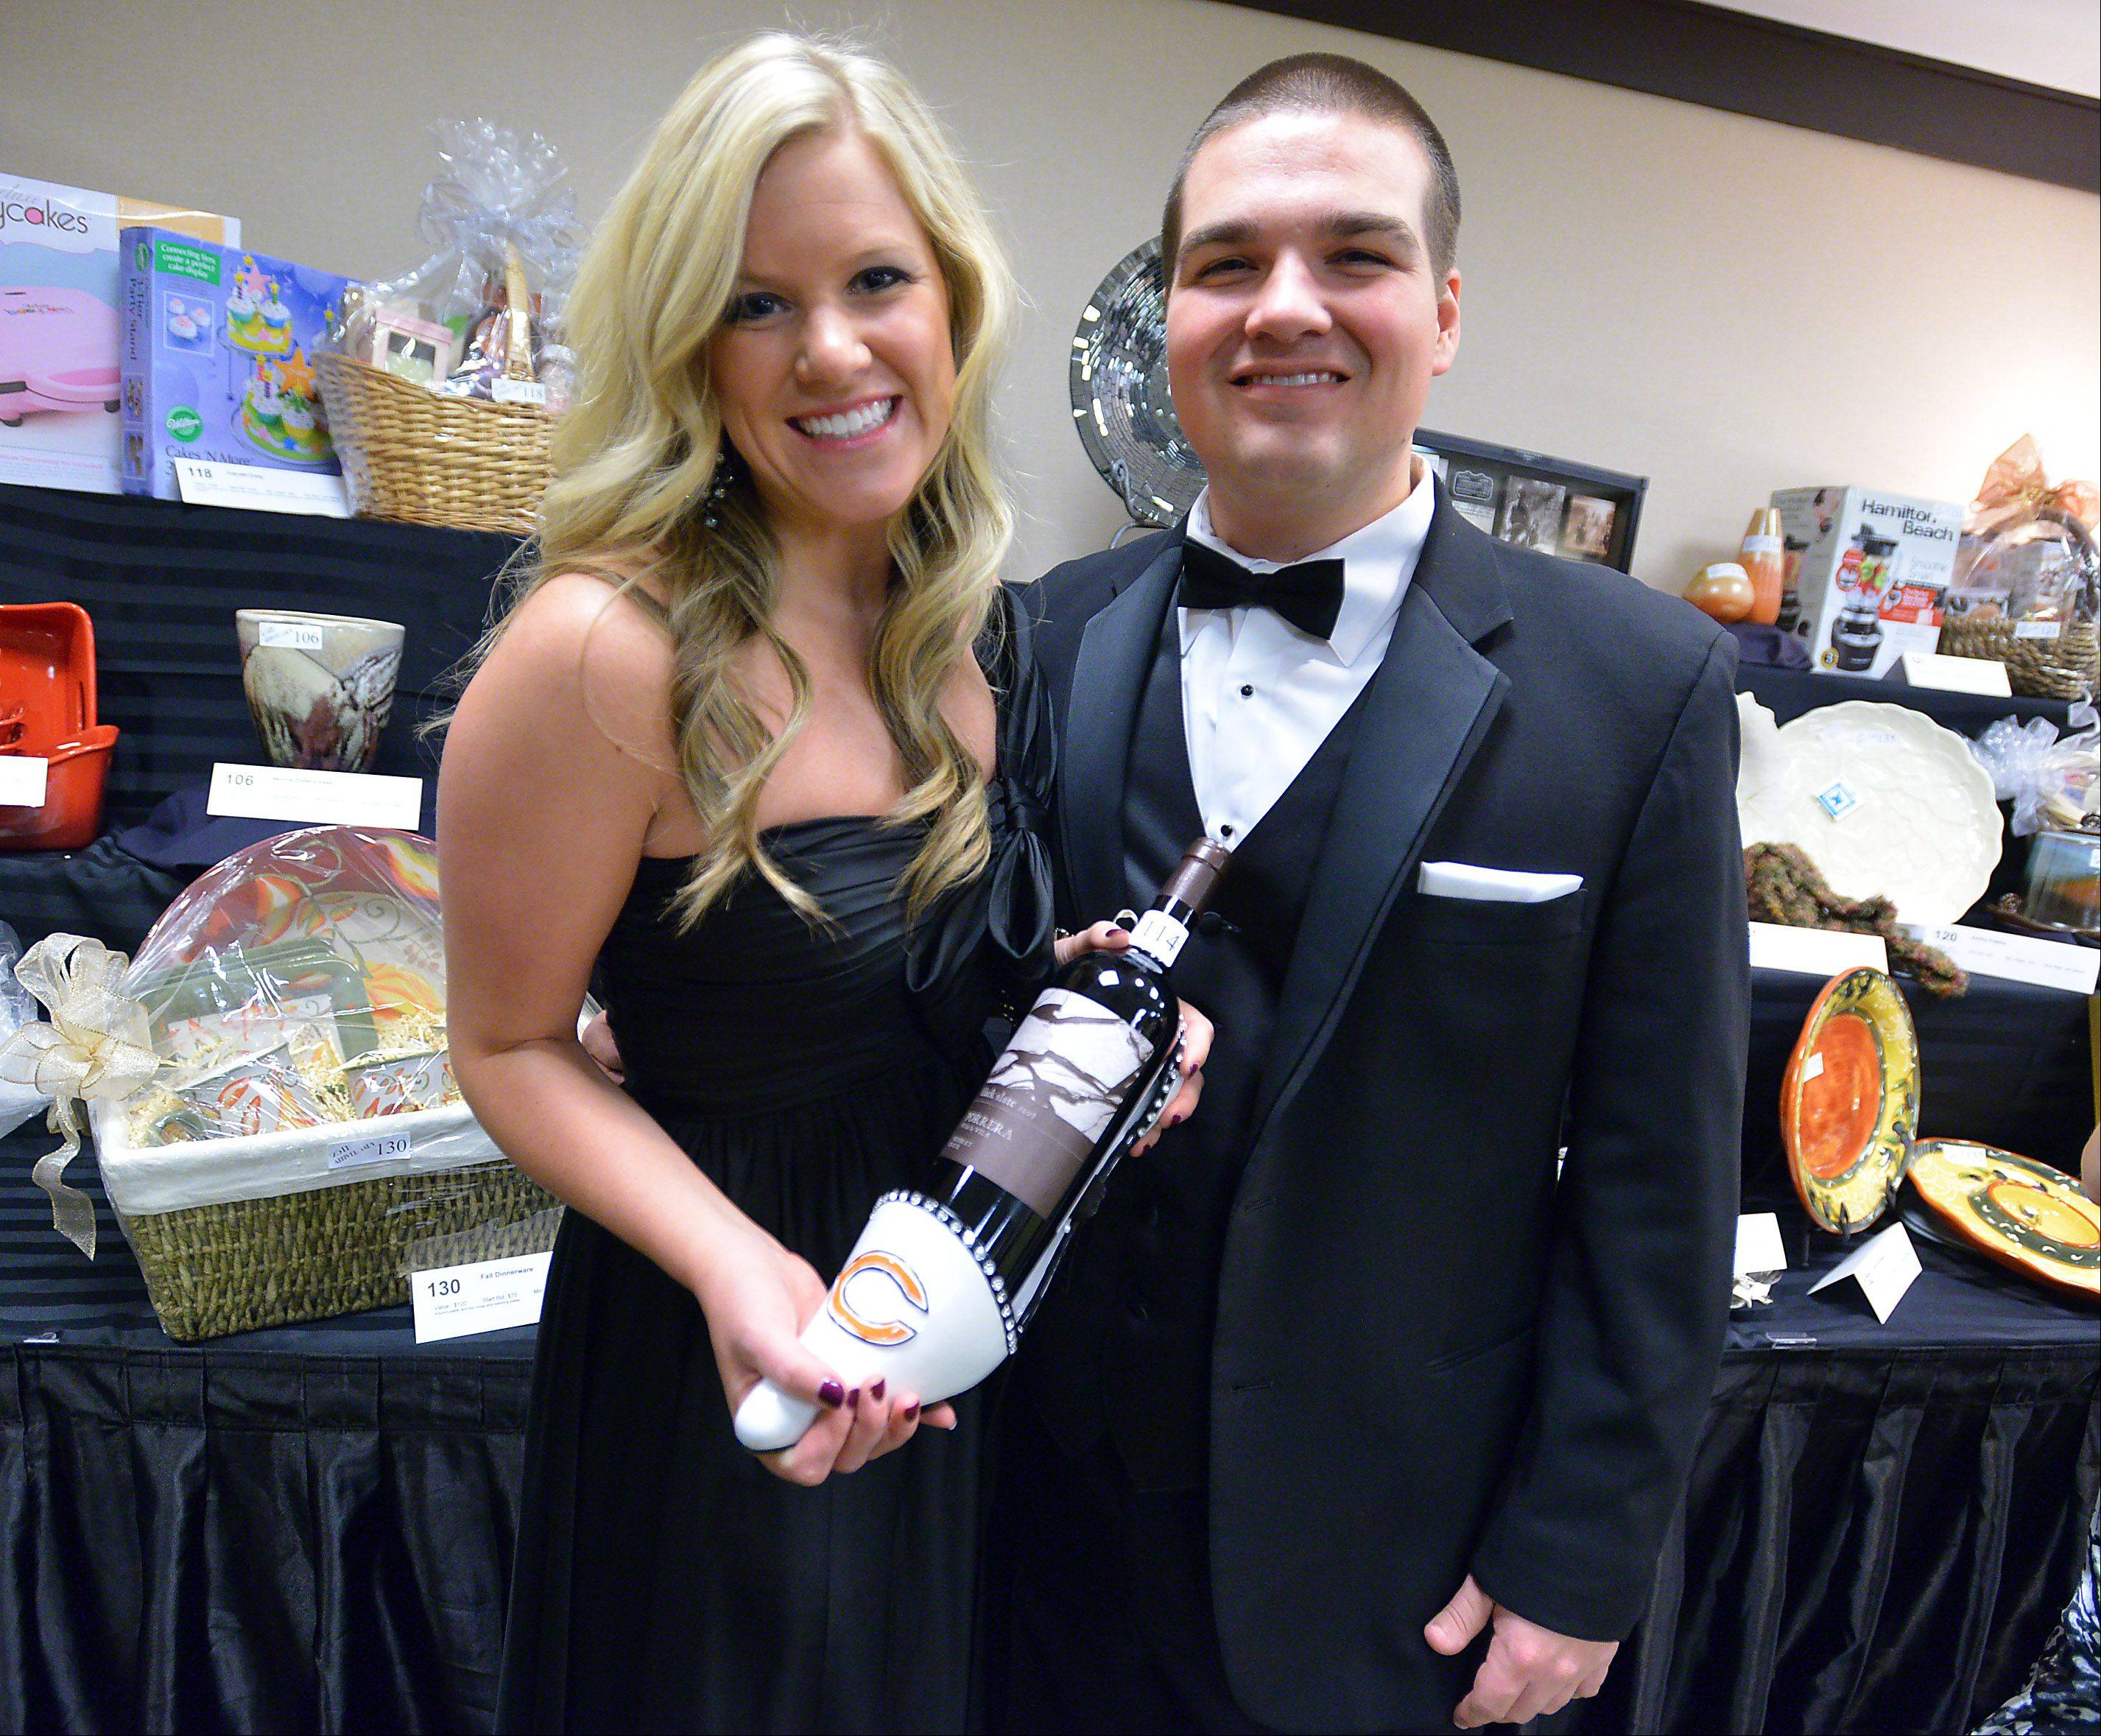 Meghan O' Kelly and Kevin Sporleder of Chicago check out the items for auction Friday at Shelter Inc.'s 25th anniversary Charity Ball at the Schaumburg Hyatt.